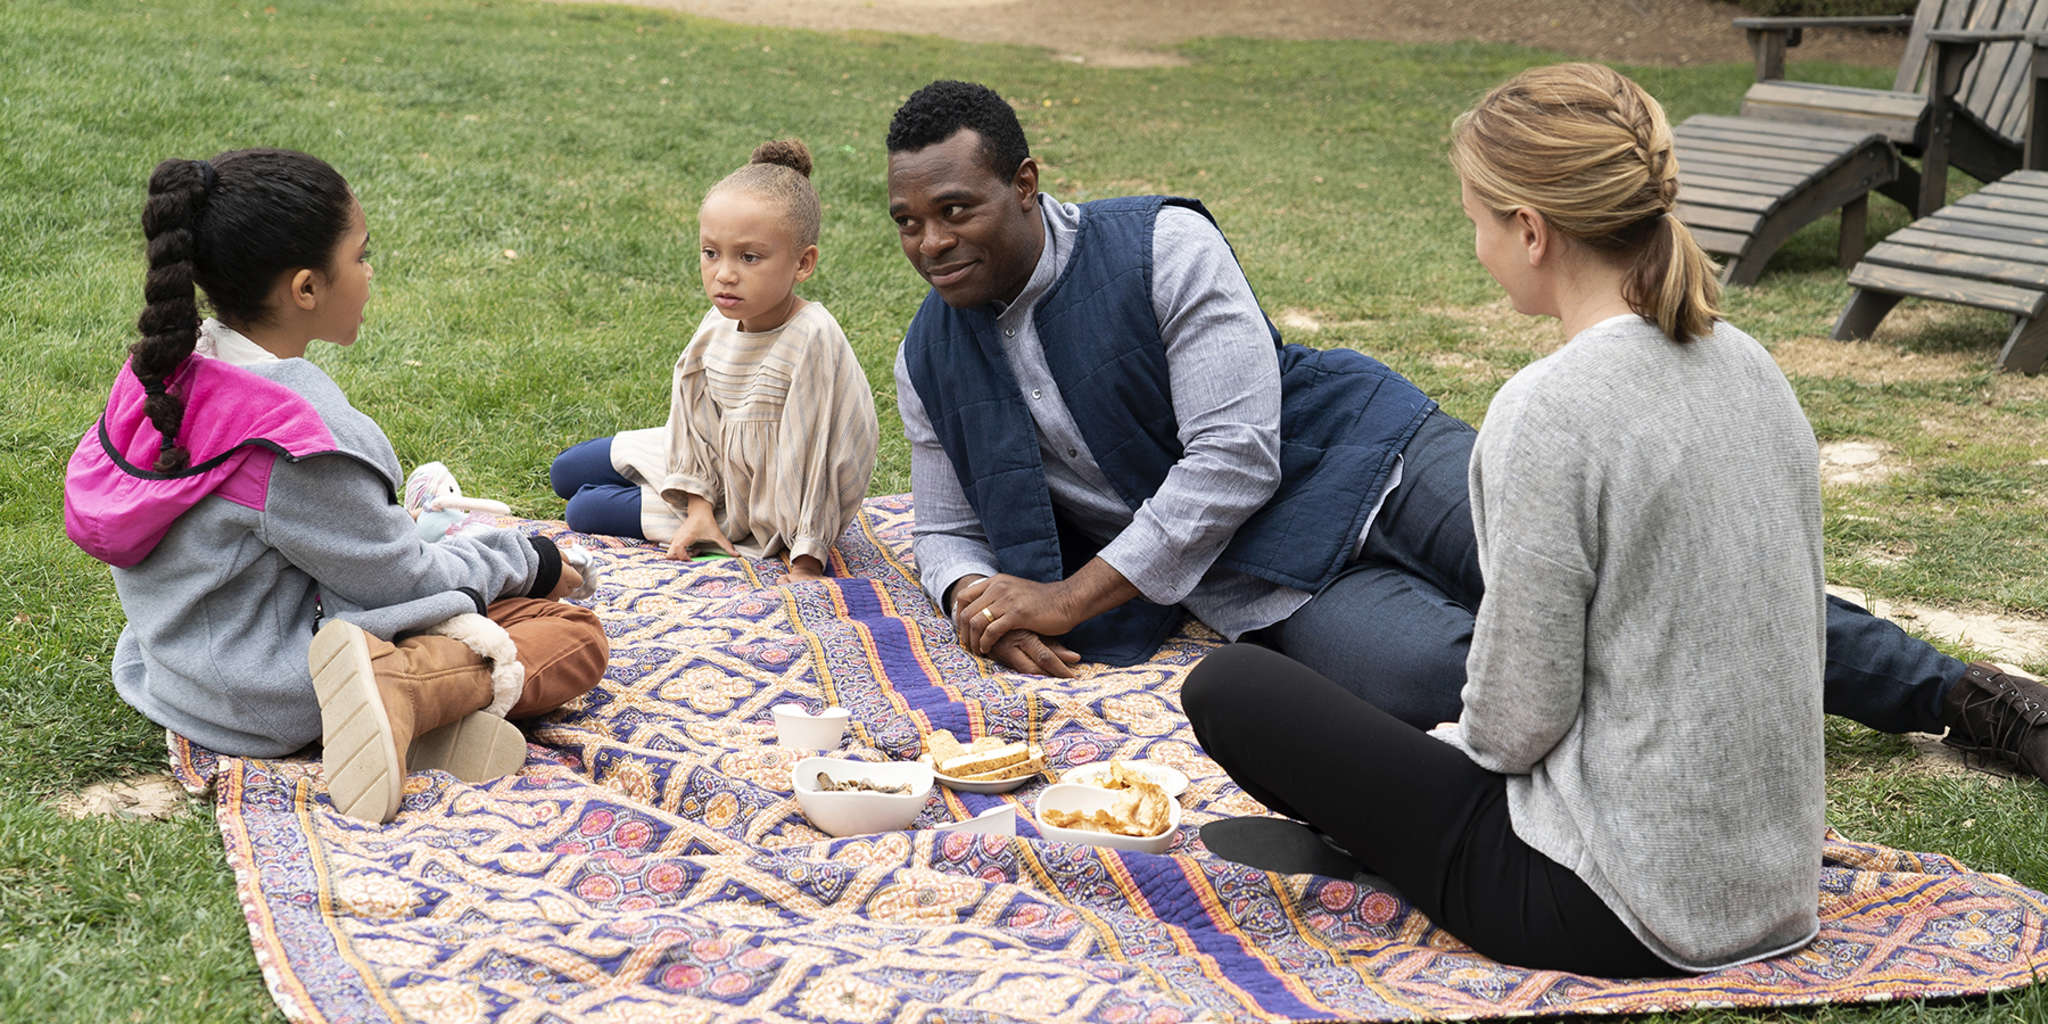 Anna Paquin, Lyriq Bent, Jaidyn Triplett, and Mykal-Michelle Harris in The Affair (2014)